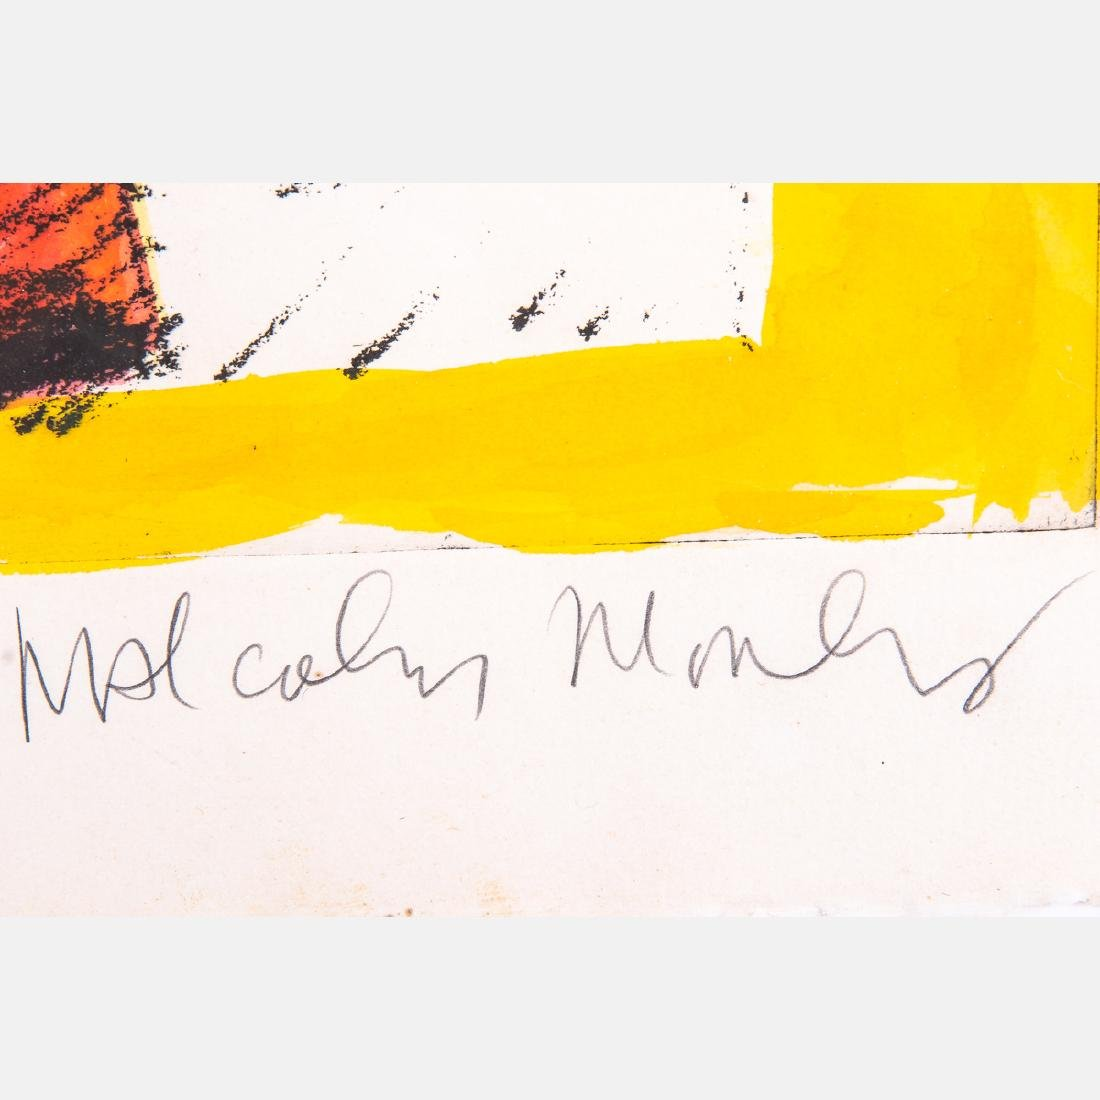 Malcolm Morley (b. 1931) Melba by Malcolm, Hand colored - 4